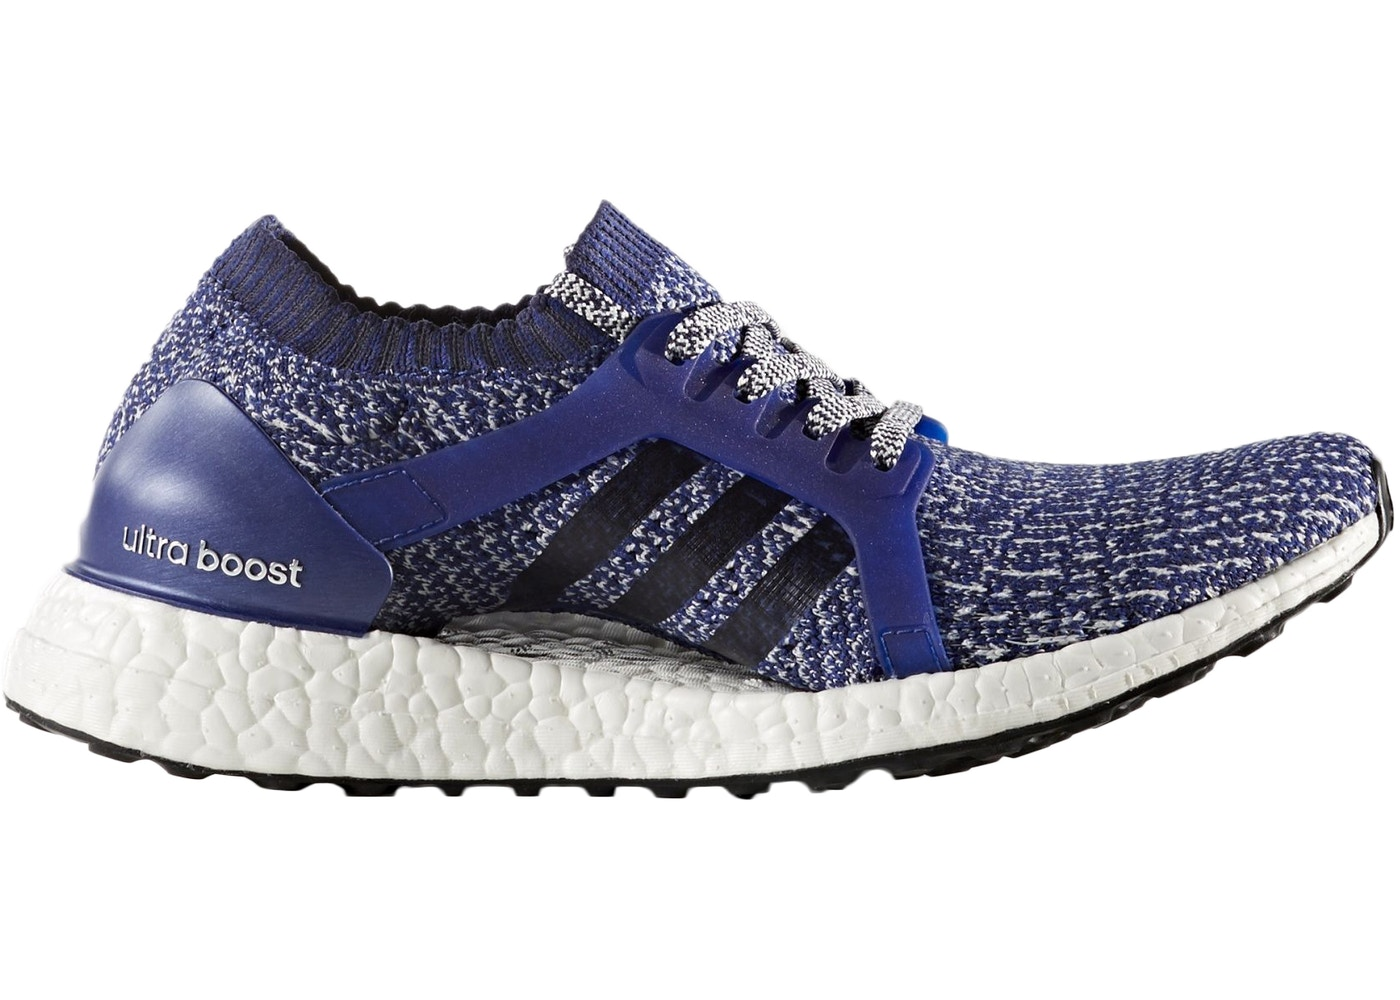 0db7bef6a86 adidas Ultra Boost Shoes - Lowest Ask